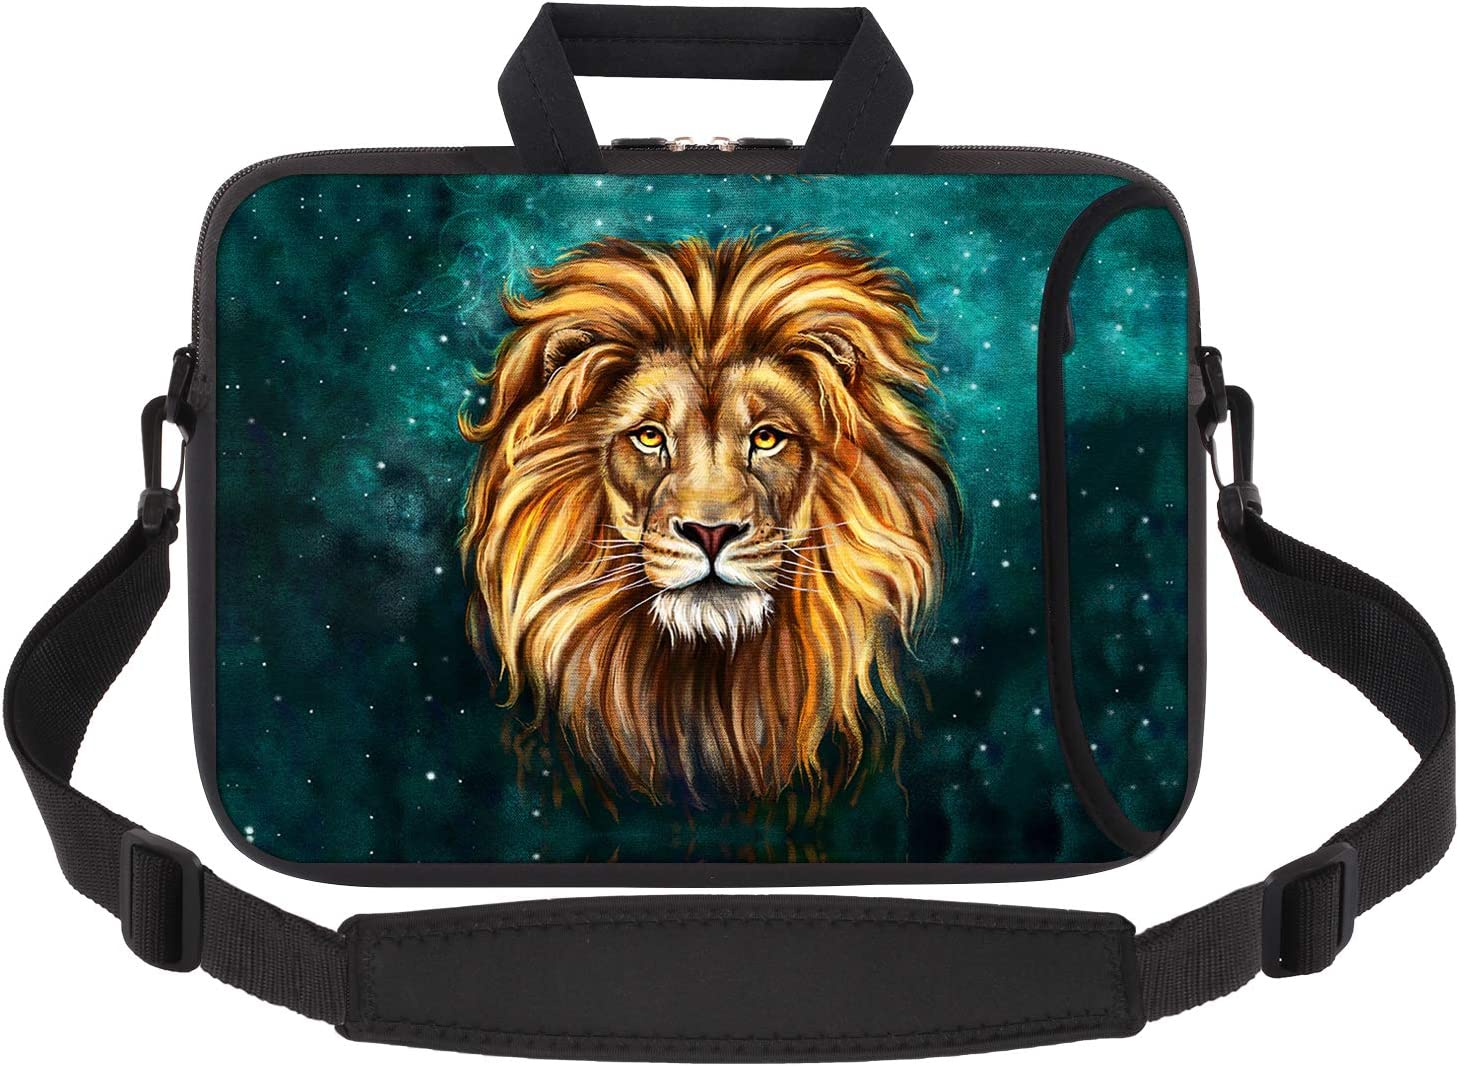 iCasso Laptop Sleeve 11.6-12.1 Inch Stylish Soft Neoprene Sleeve Case Cover Handbag for MacBook Air 11,MacBook Retina 12 Inch/iPad Pro/Ultrabook Netbook Tablet (Lion)